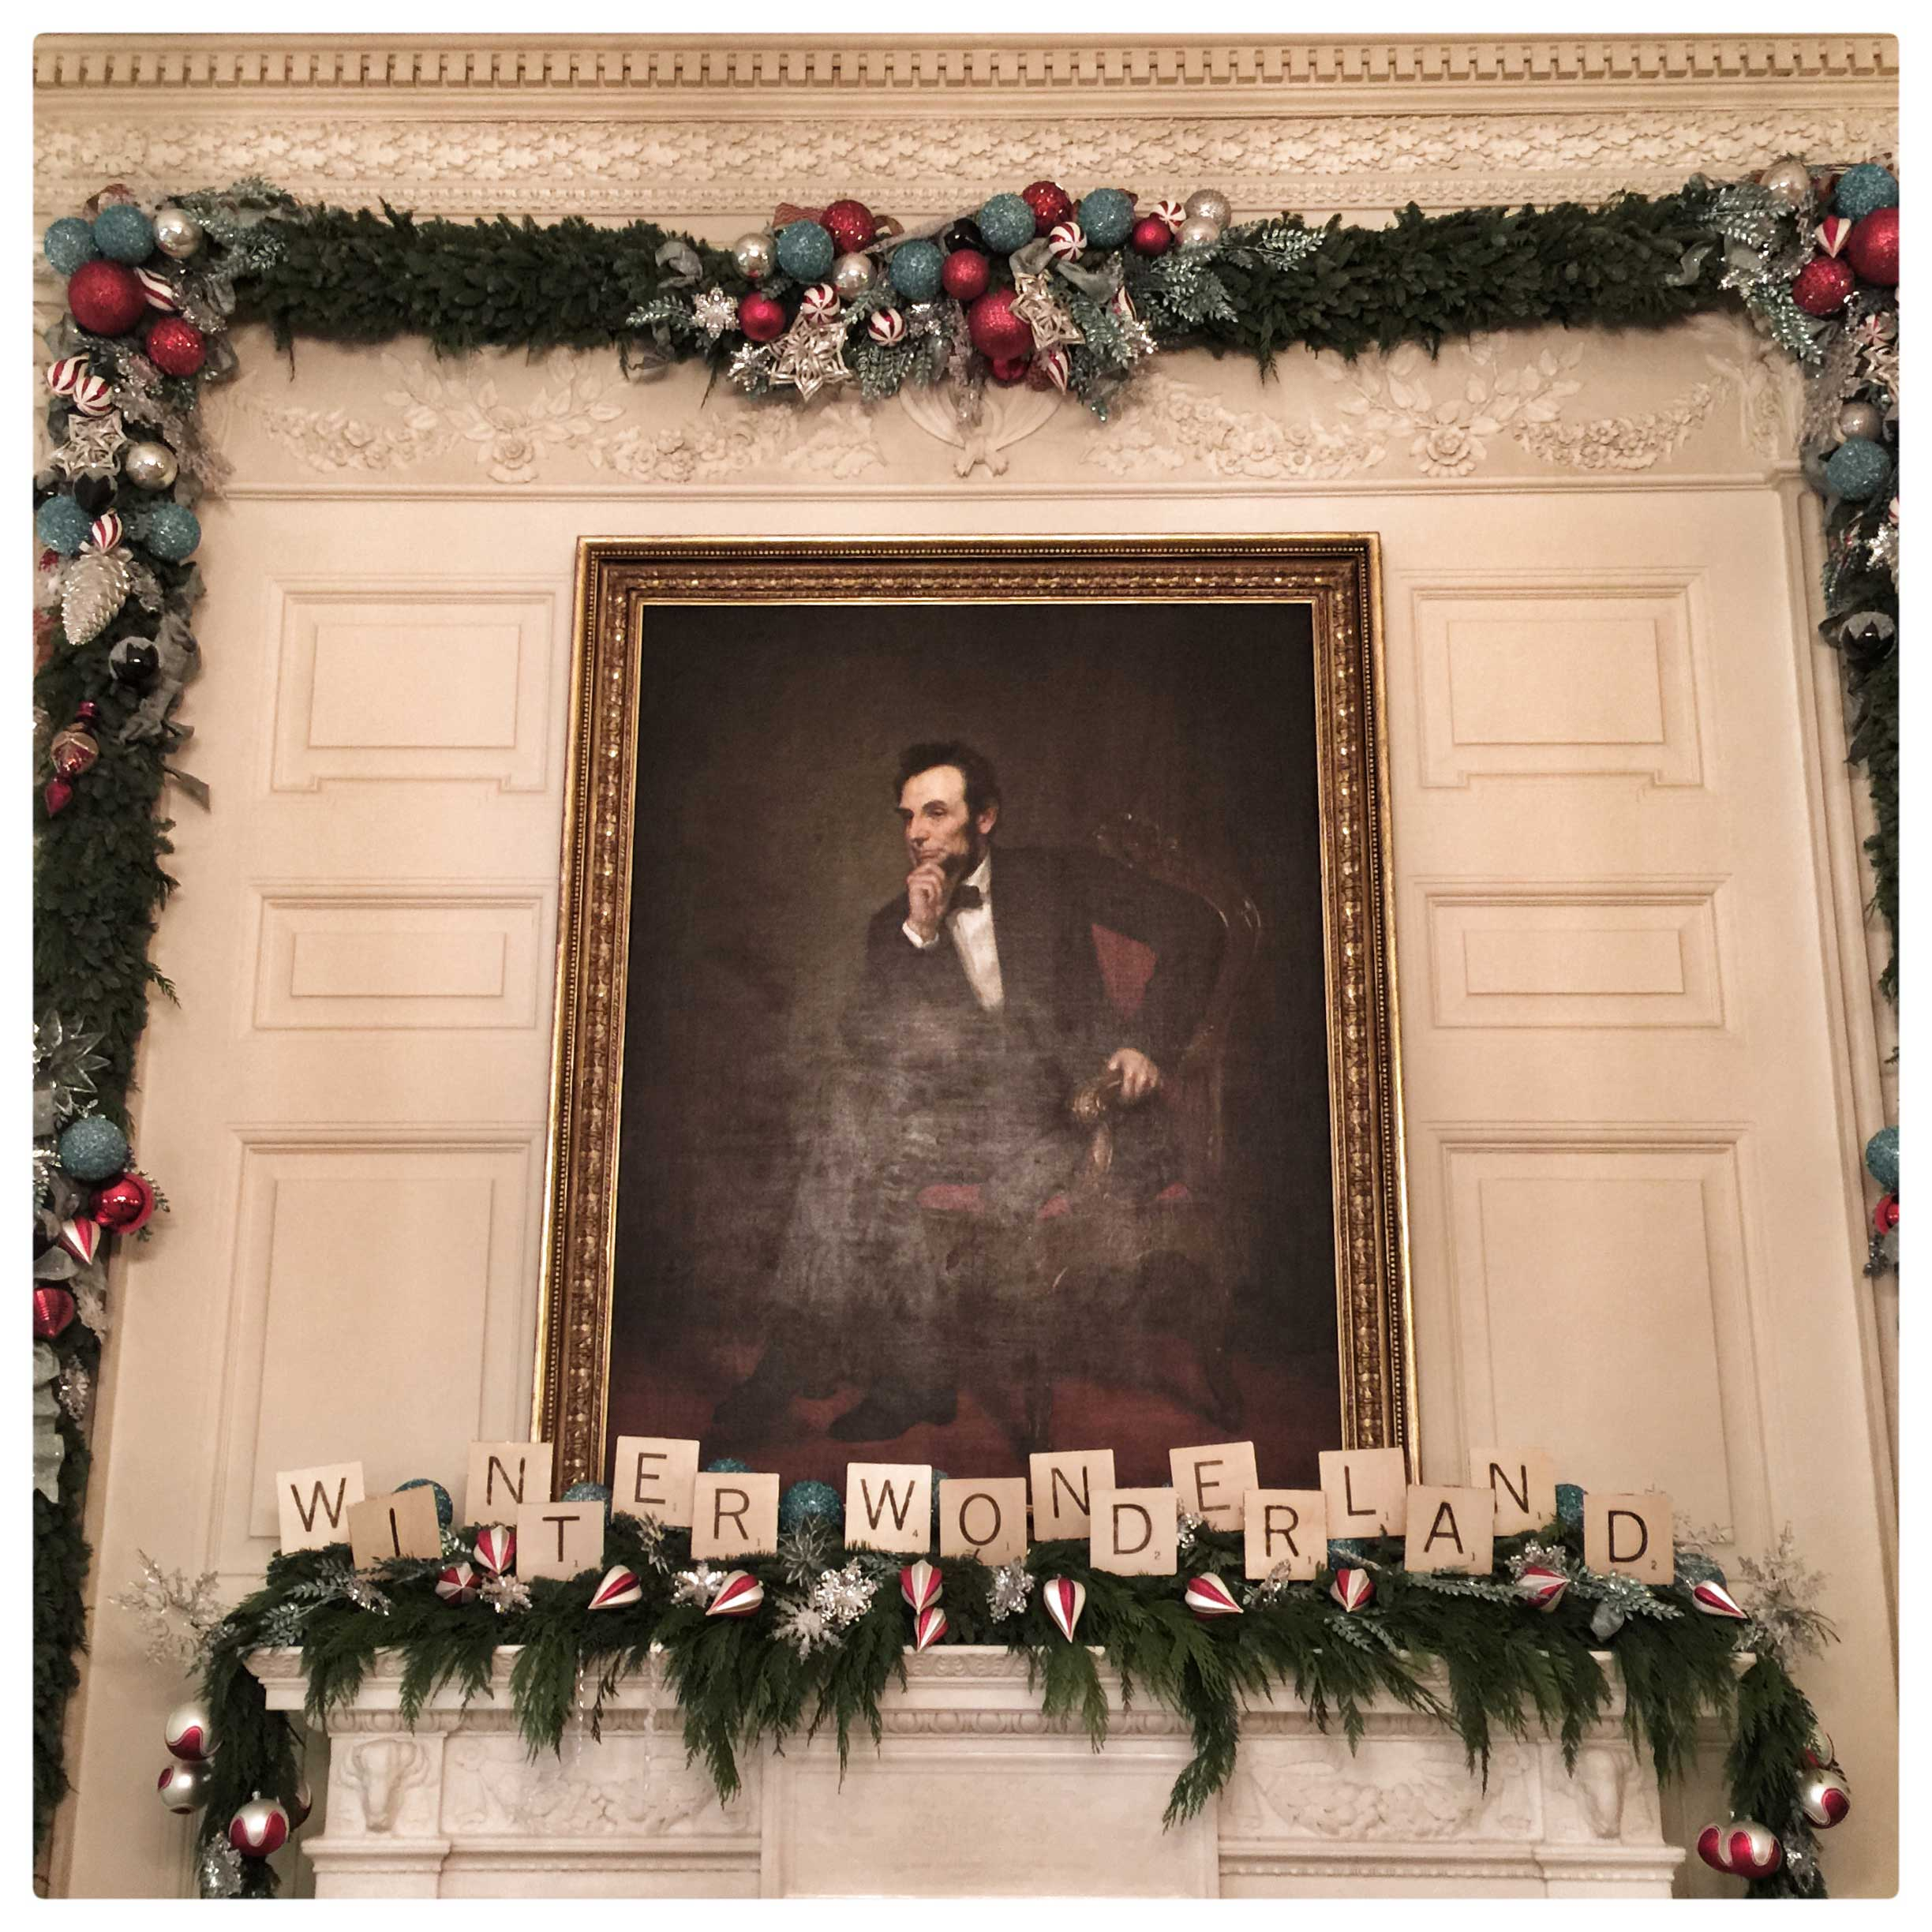 A portrait of President Lincoln in the State Dining Room at the White House is surrounded by holiday decorations.